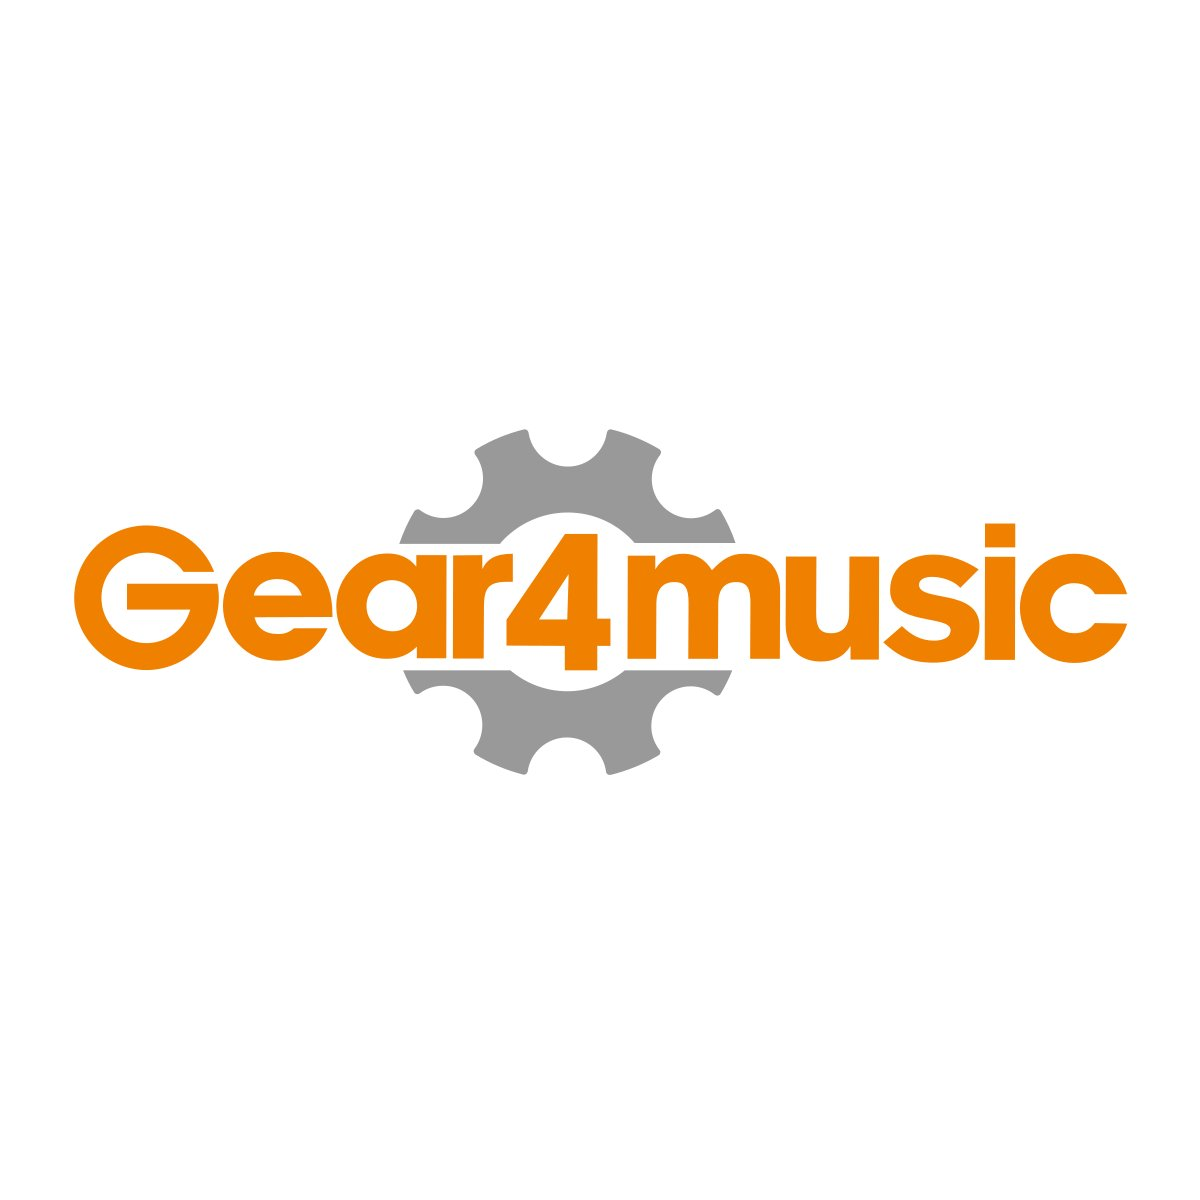 Bajo LA de Gear4music, Sunburst